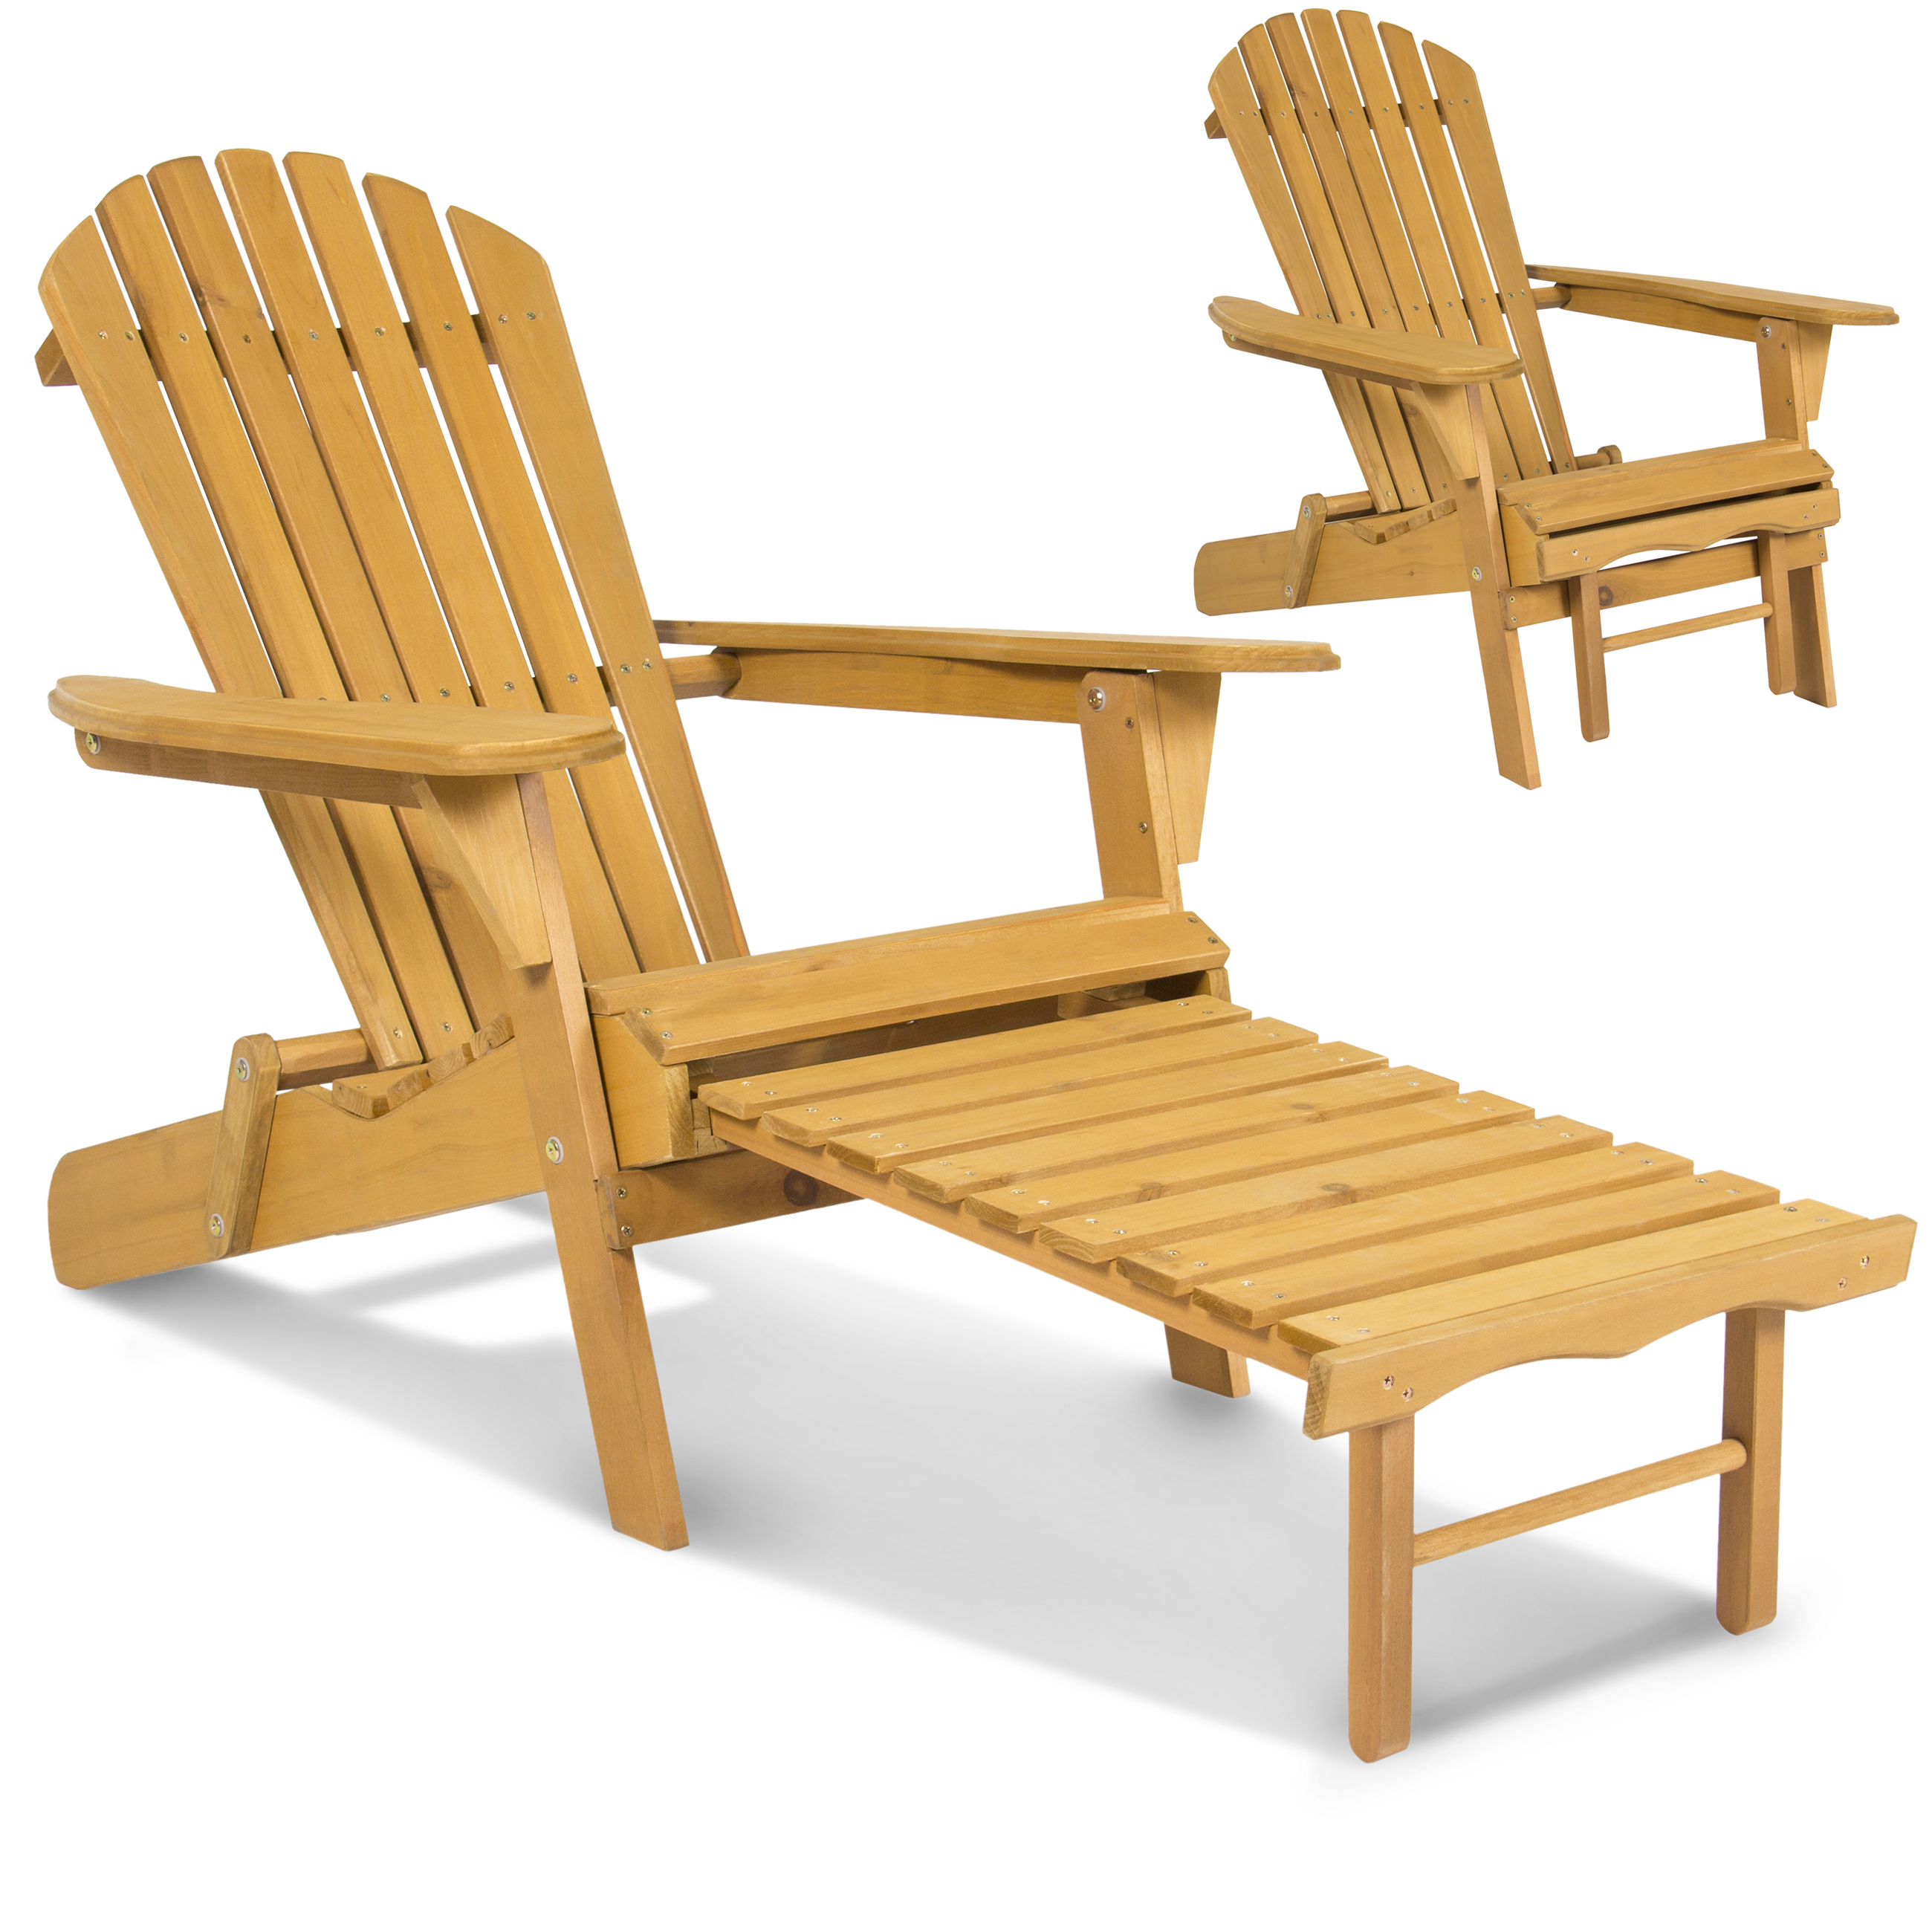 Wood folding chair outdoor - Outdoor Adirondack Wood Chair Foldable W Pull Out Ottoman Patio Deck Furniture Walmart Com